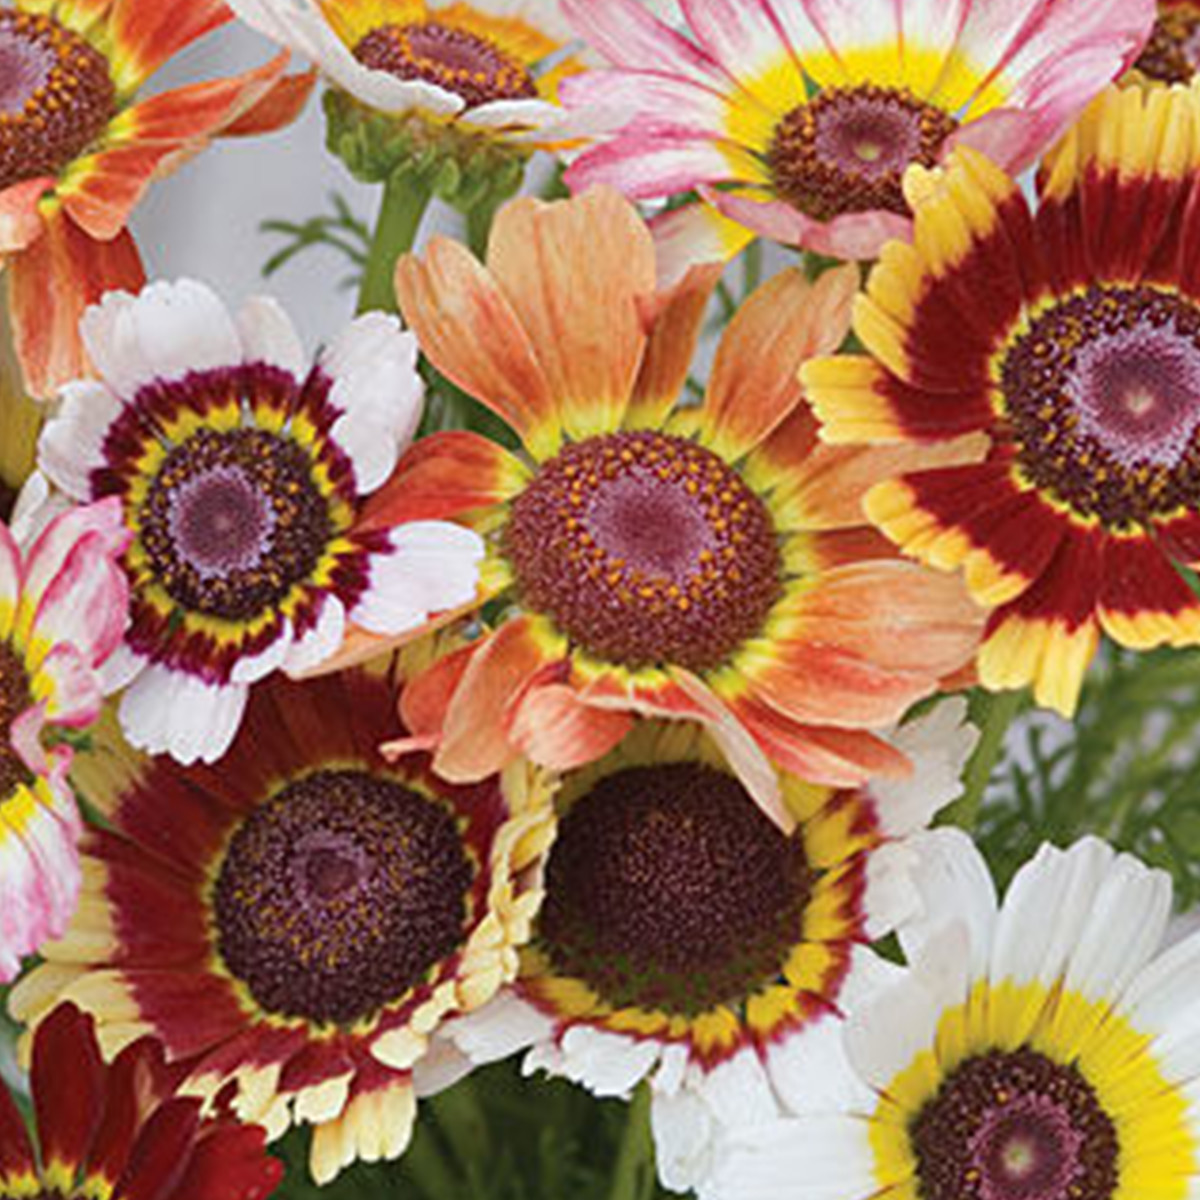 Colorful Chrysanthemums in yellow, orange, and red photo